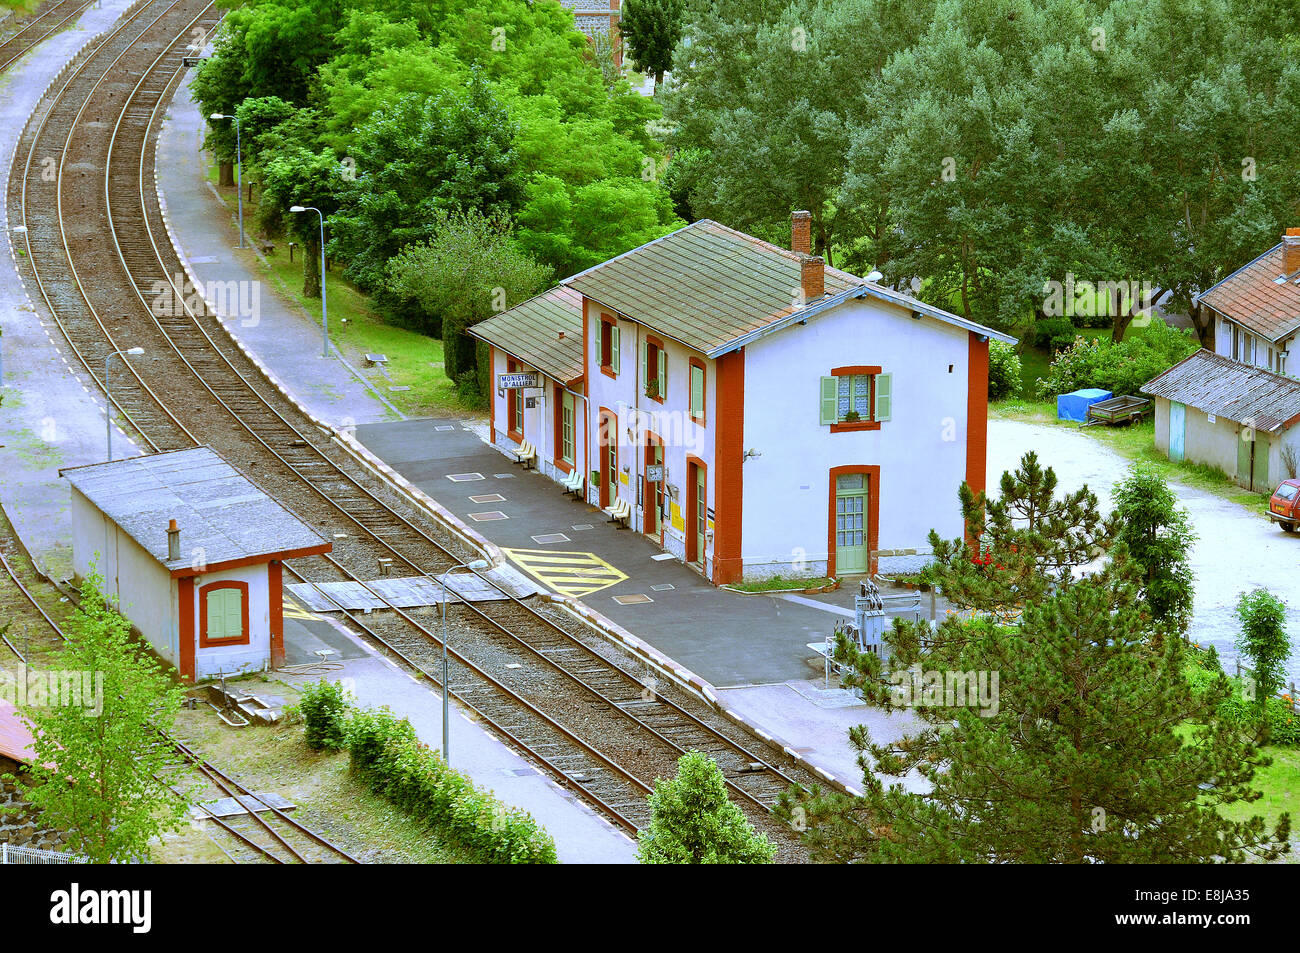 Small train station in Aveyron department. - Stock Image